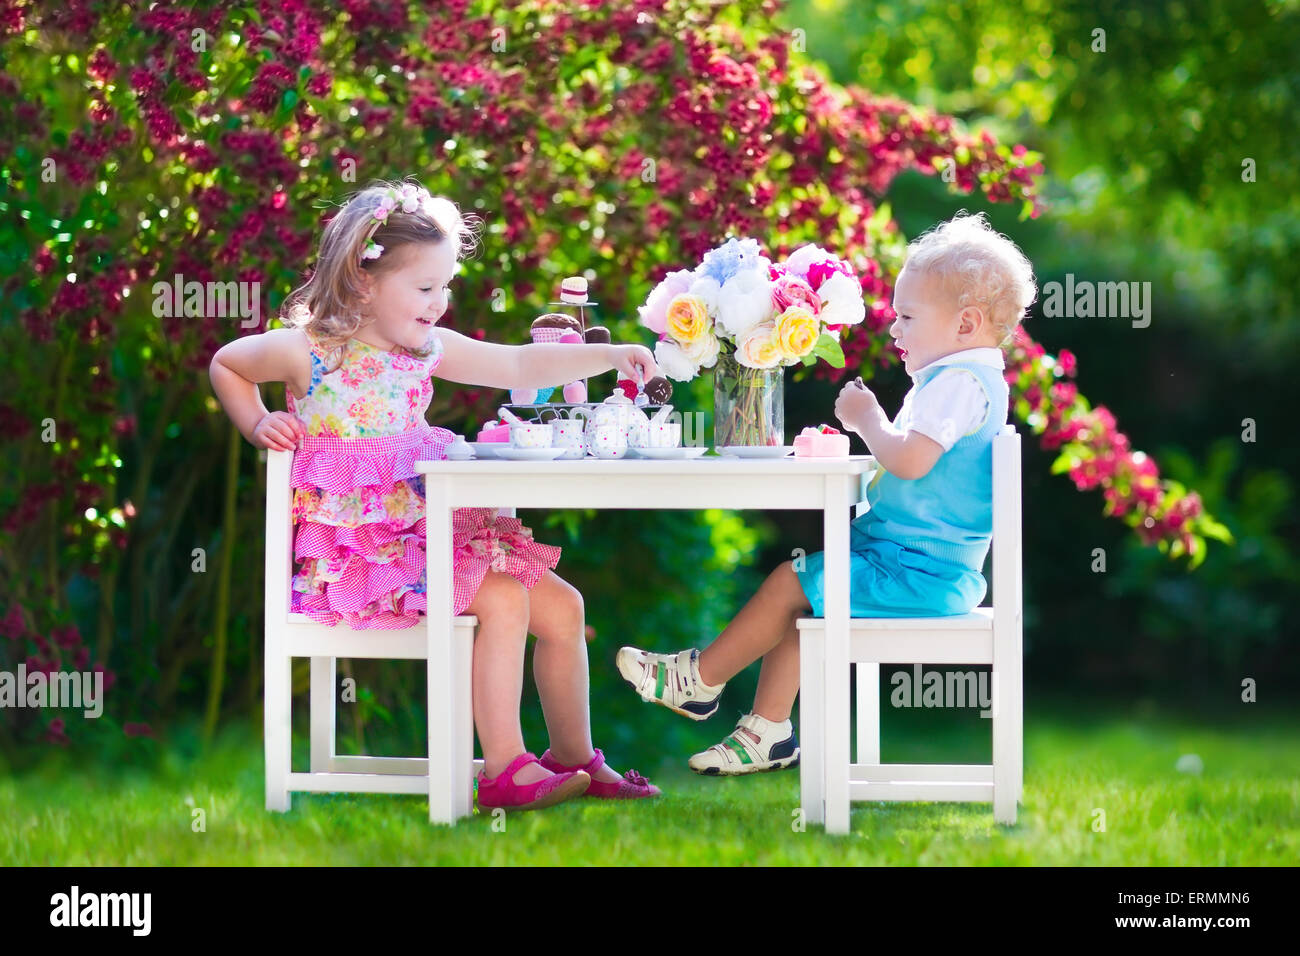 Tea garden party for kids. Child birthday celebration. Little boy and girl play outdoor drinking hot chocolate and - Stock Image